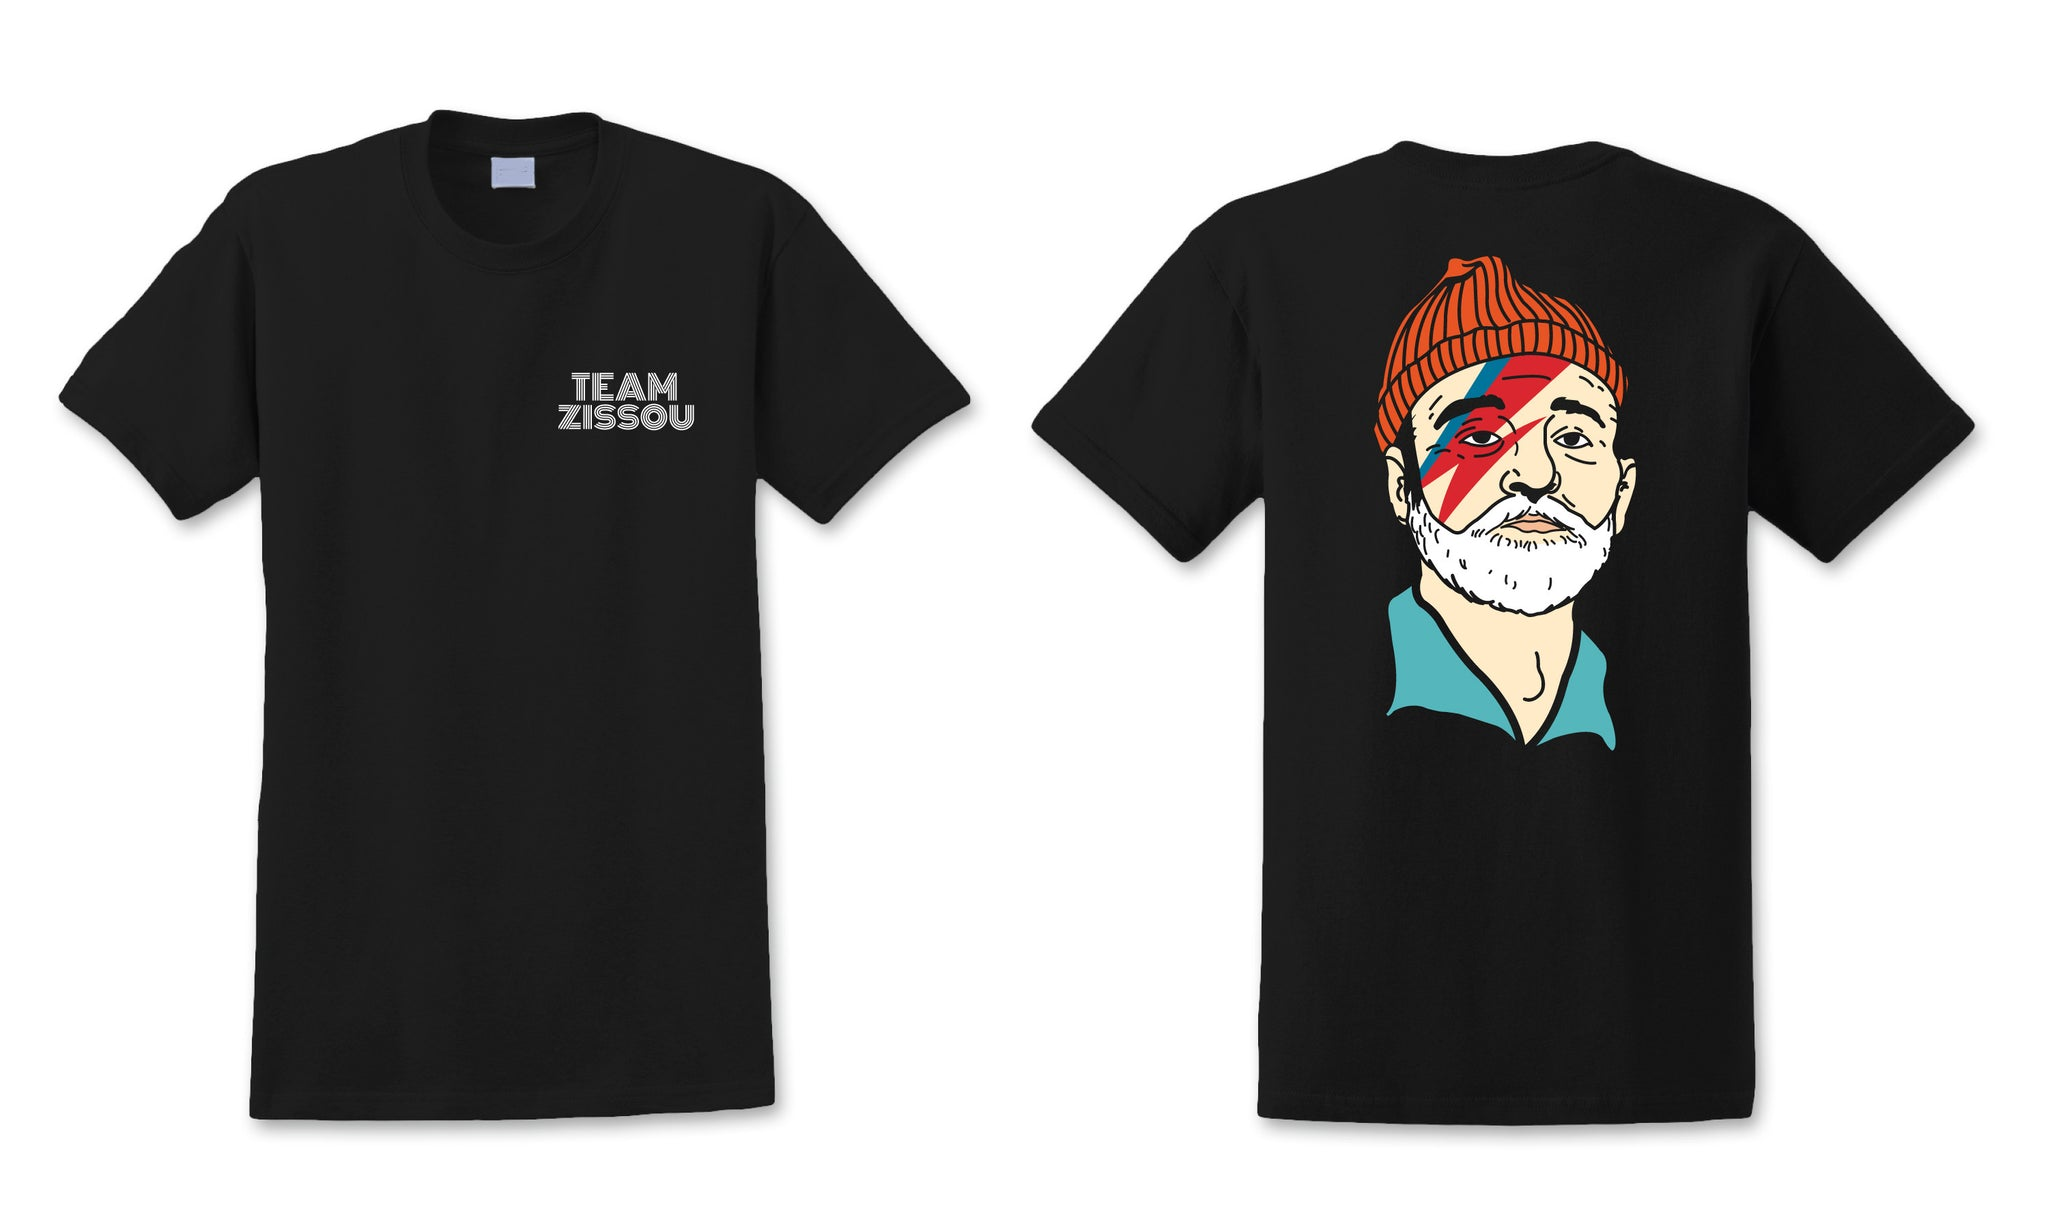 Team Zissou Tee (BLACK), Apparel, - Sad Truth Supply - Enamel Pins